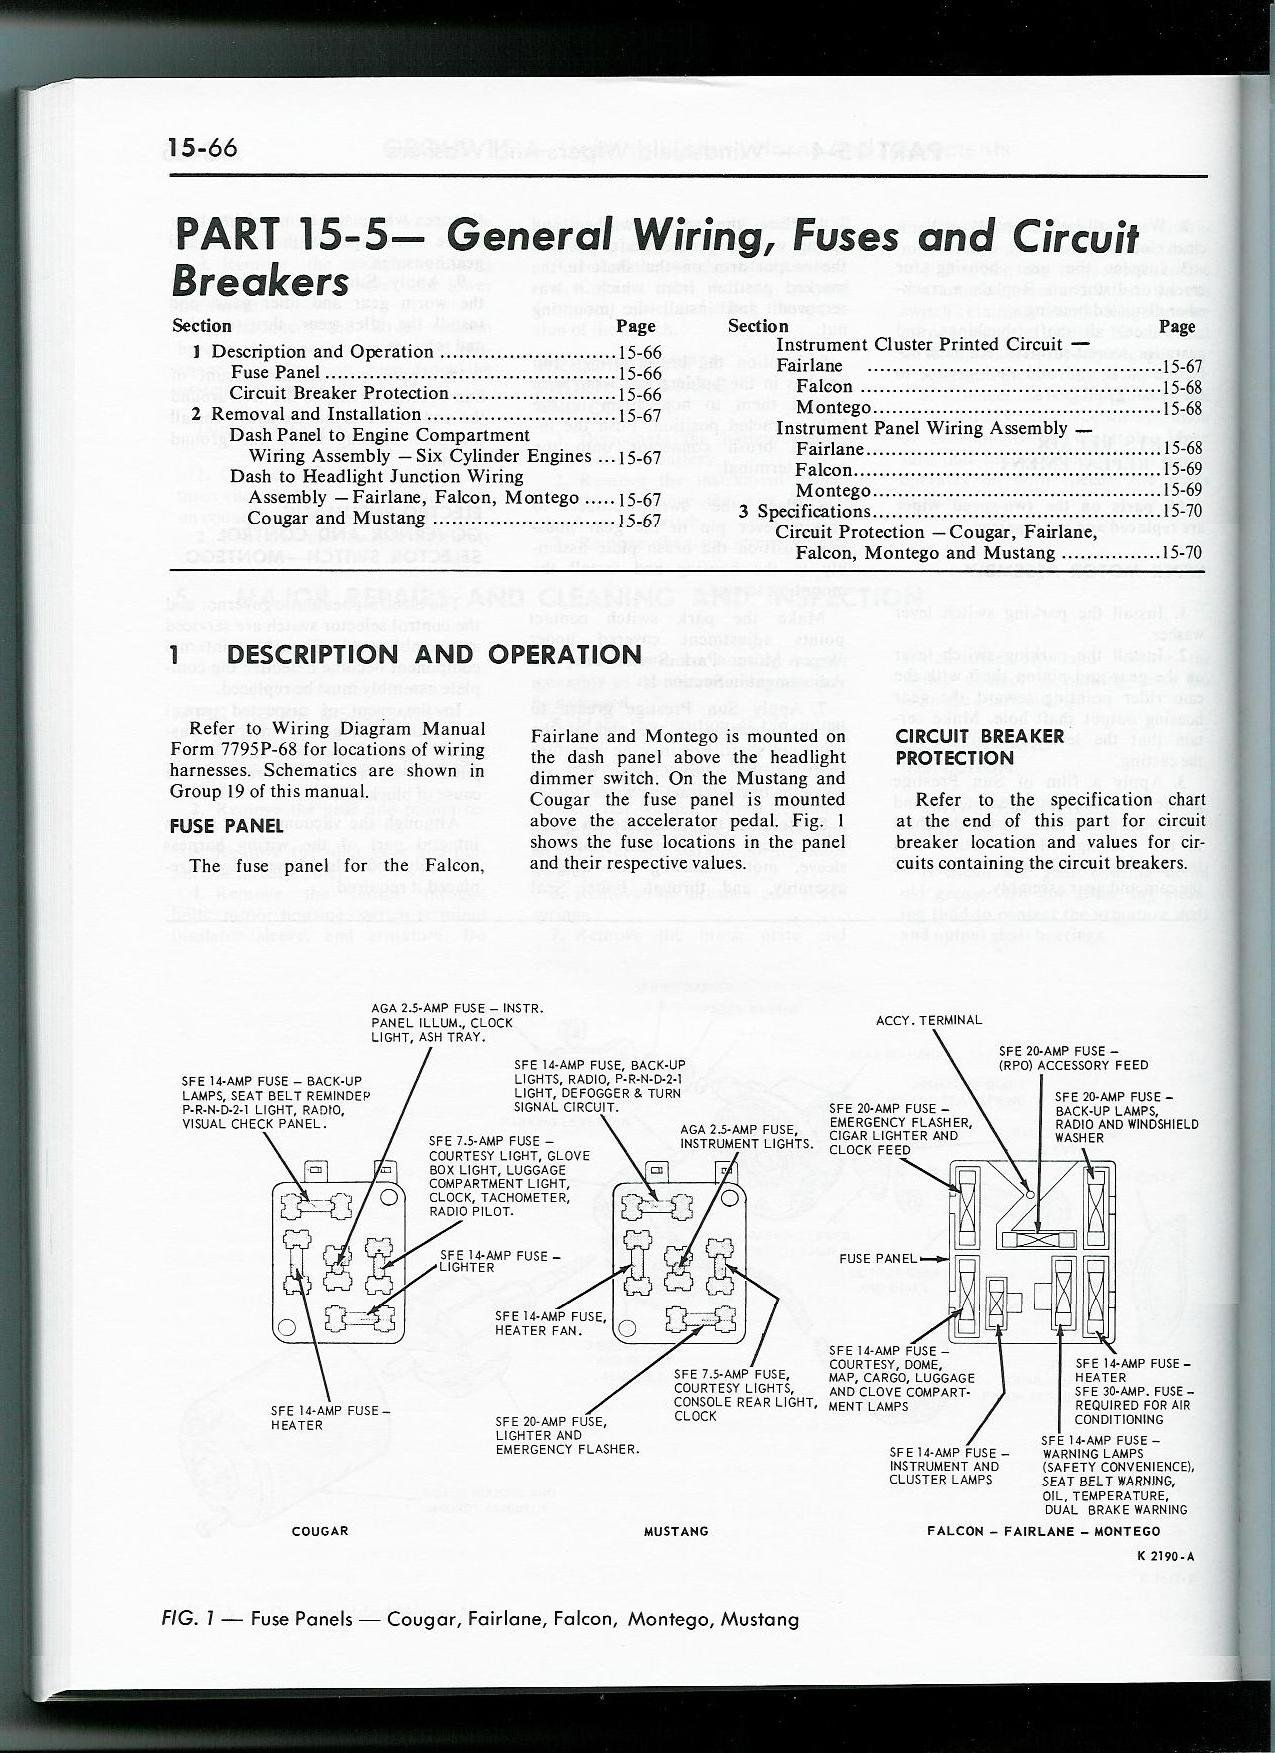 67 Mustang Fuse Box 19 Wiring Diagram Images Diagrams 1967 Camaro Parts 60431d1233555247 1965 Panel 68